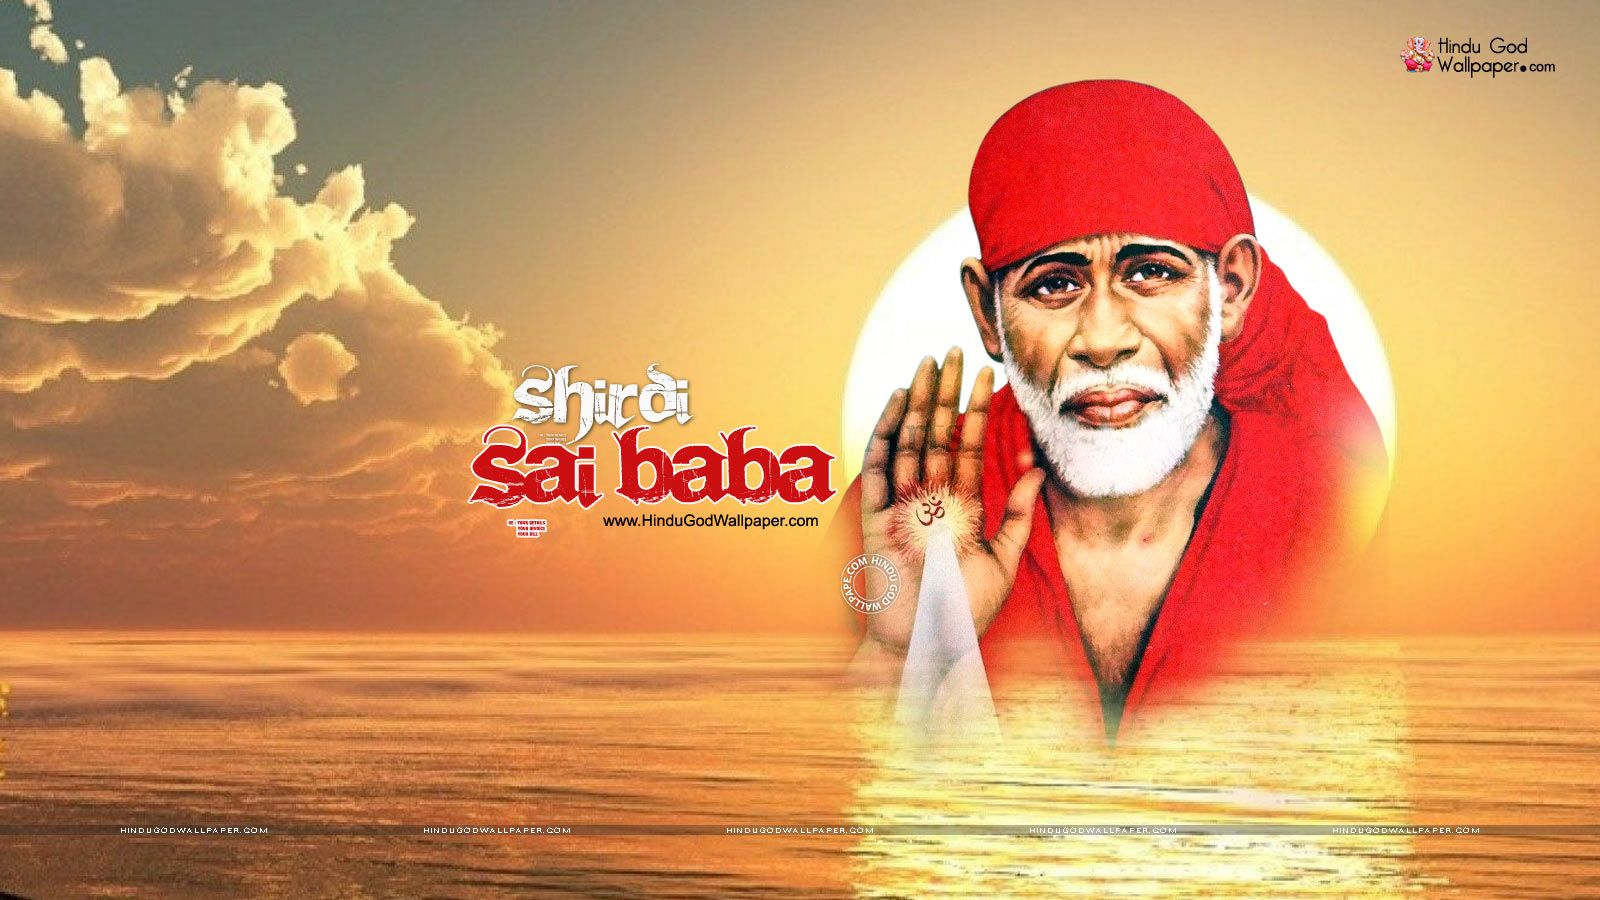 Hd wallpaper sai baba - Sai Baba Hd Wallpapers 1600x900 Sai Baba Wallpapers Pinterest Sai Baba